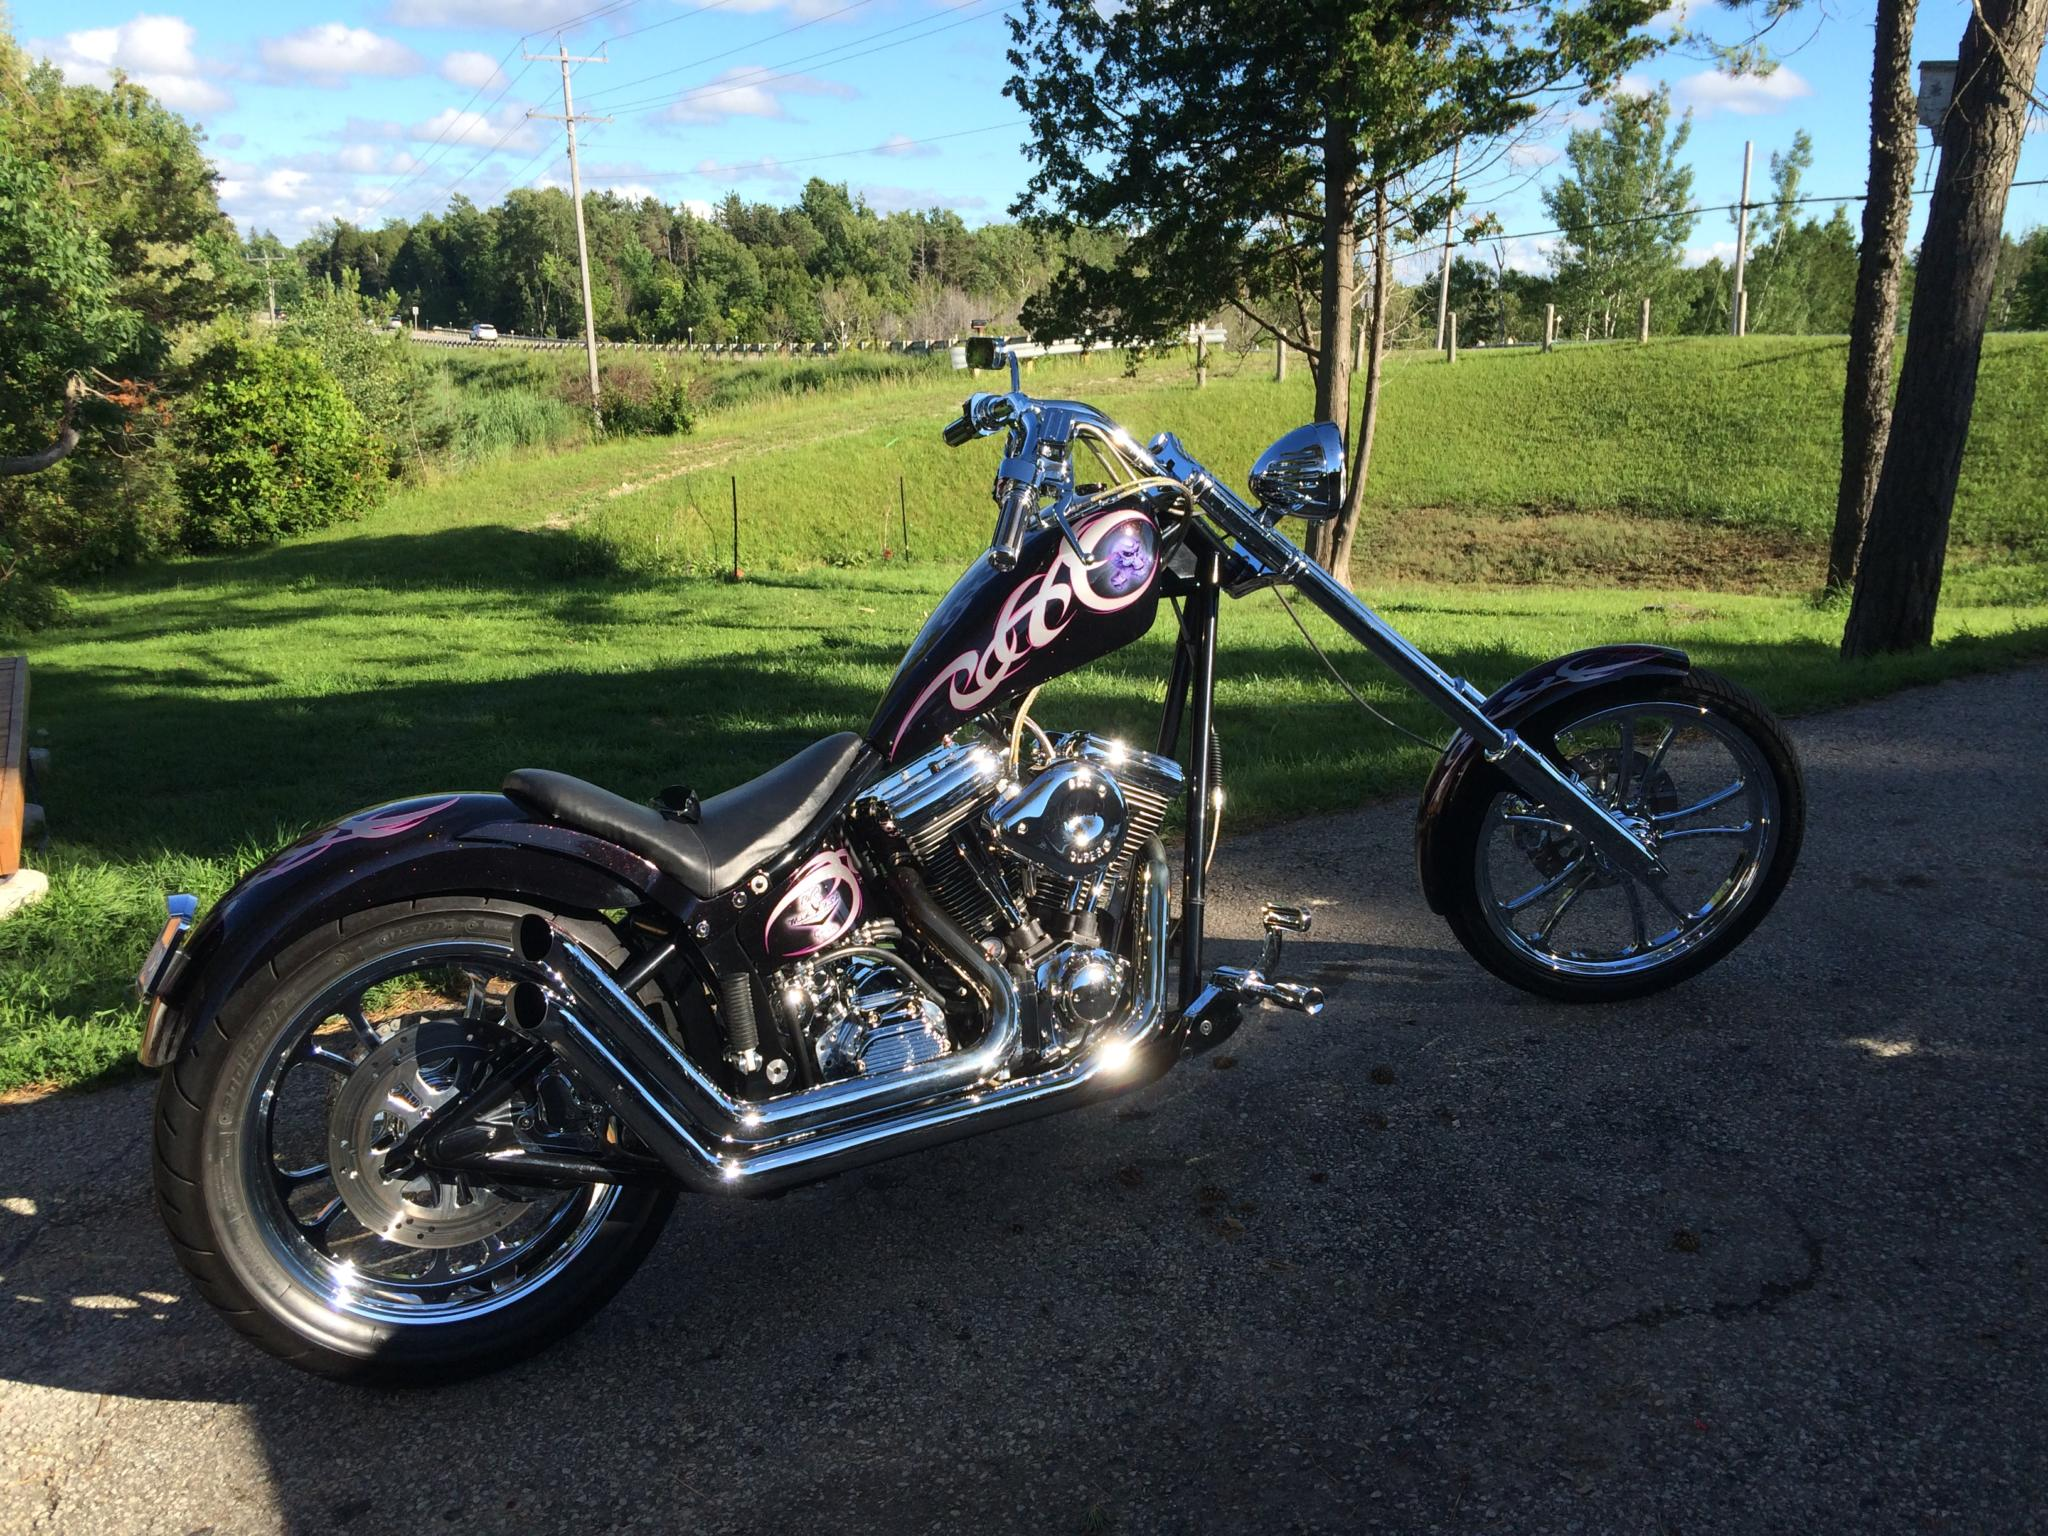 Ben McGowan's Softail Equipped with Sidewinders